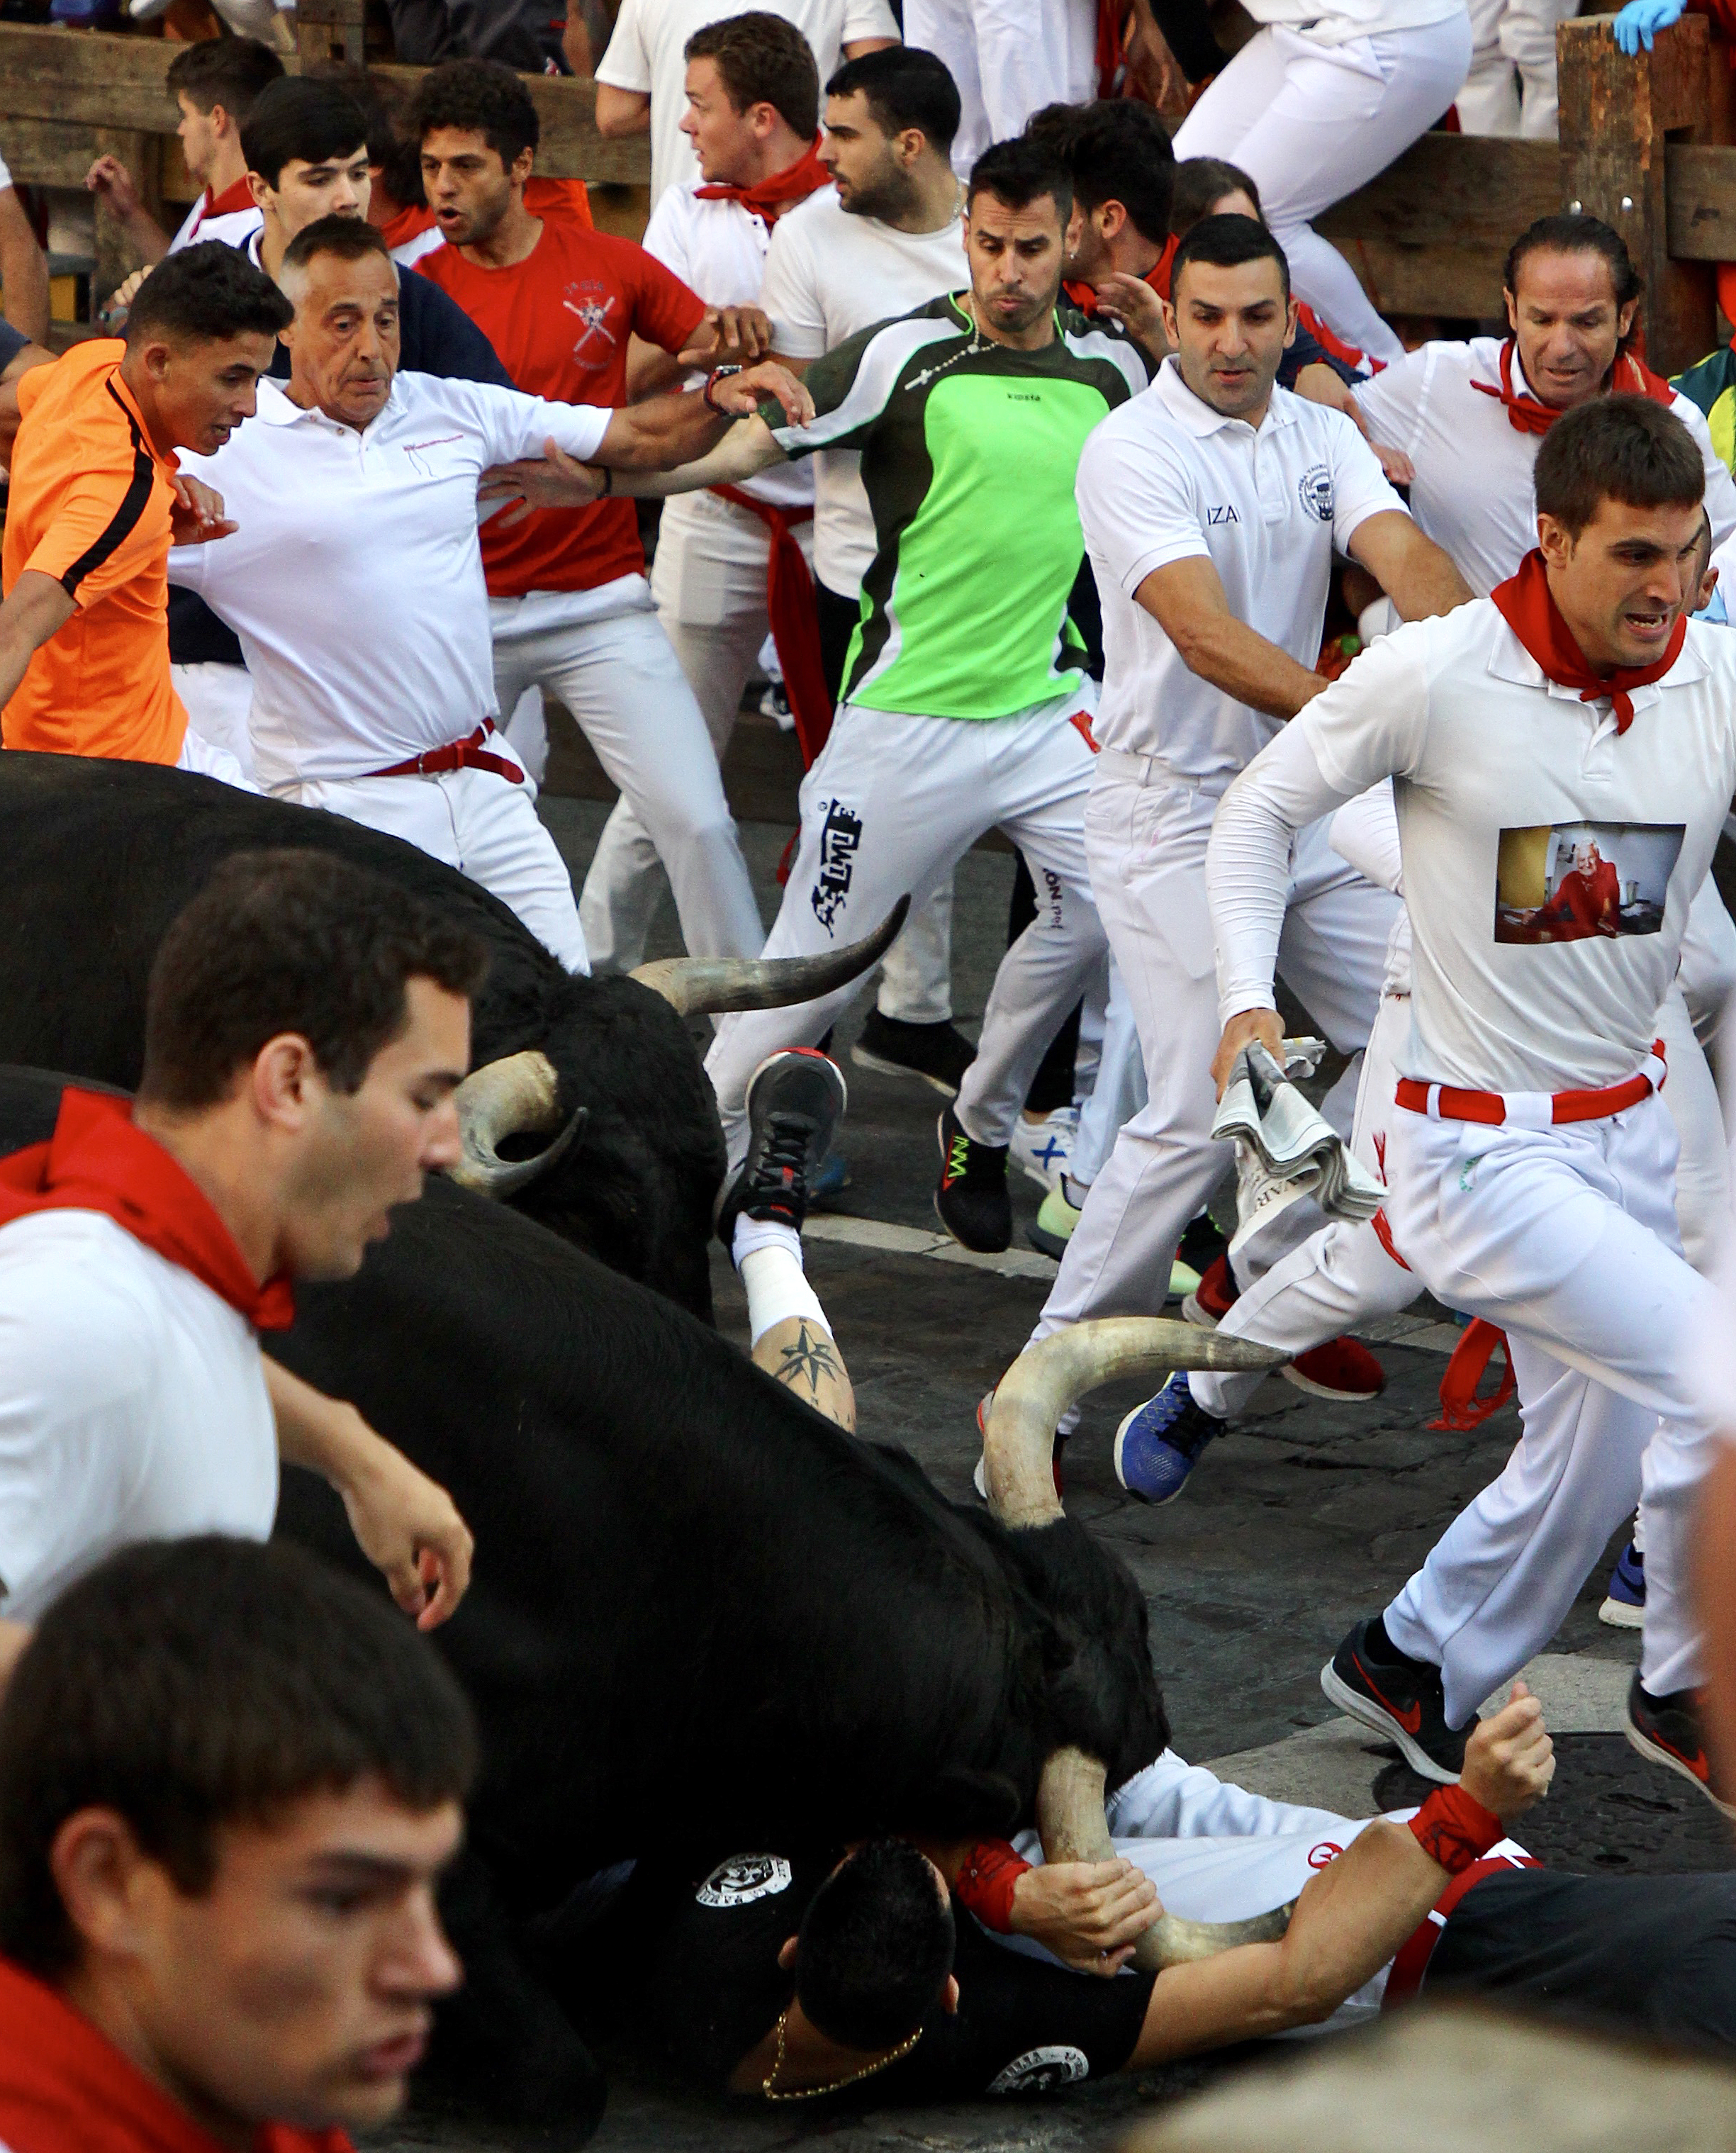 squire-running-with-bulls-washpo-submission.jpg